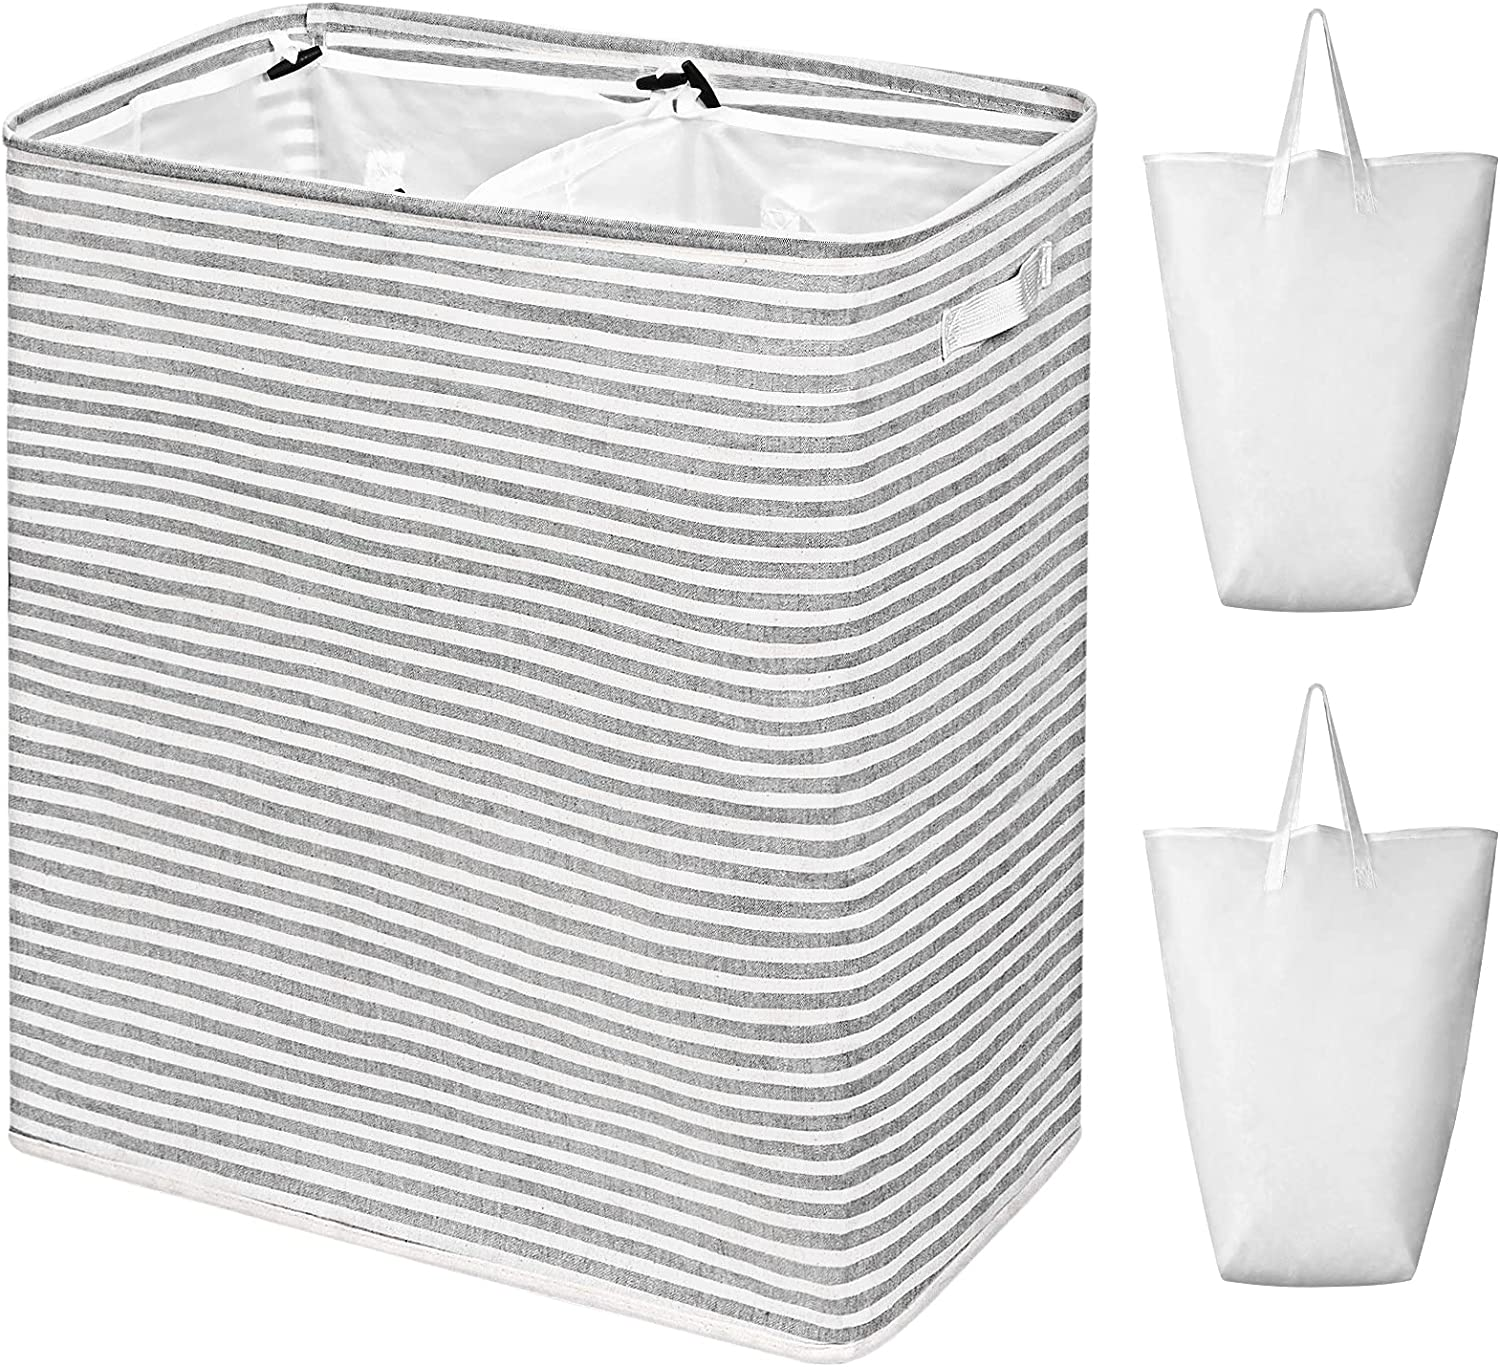 WOWLIVE 115L Freestanding Laundry Hamper Divided 115L/Double, Striped Grey